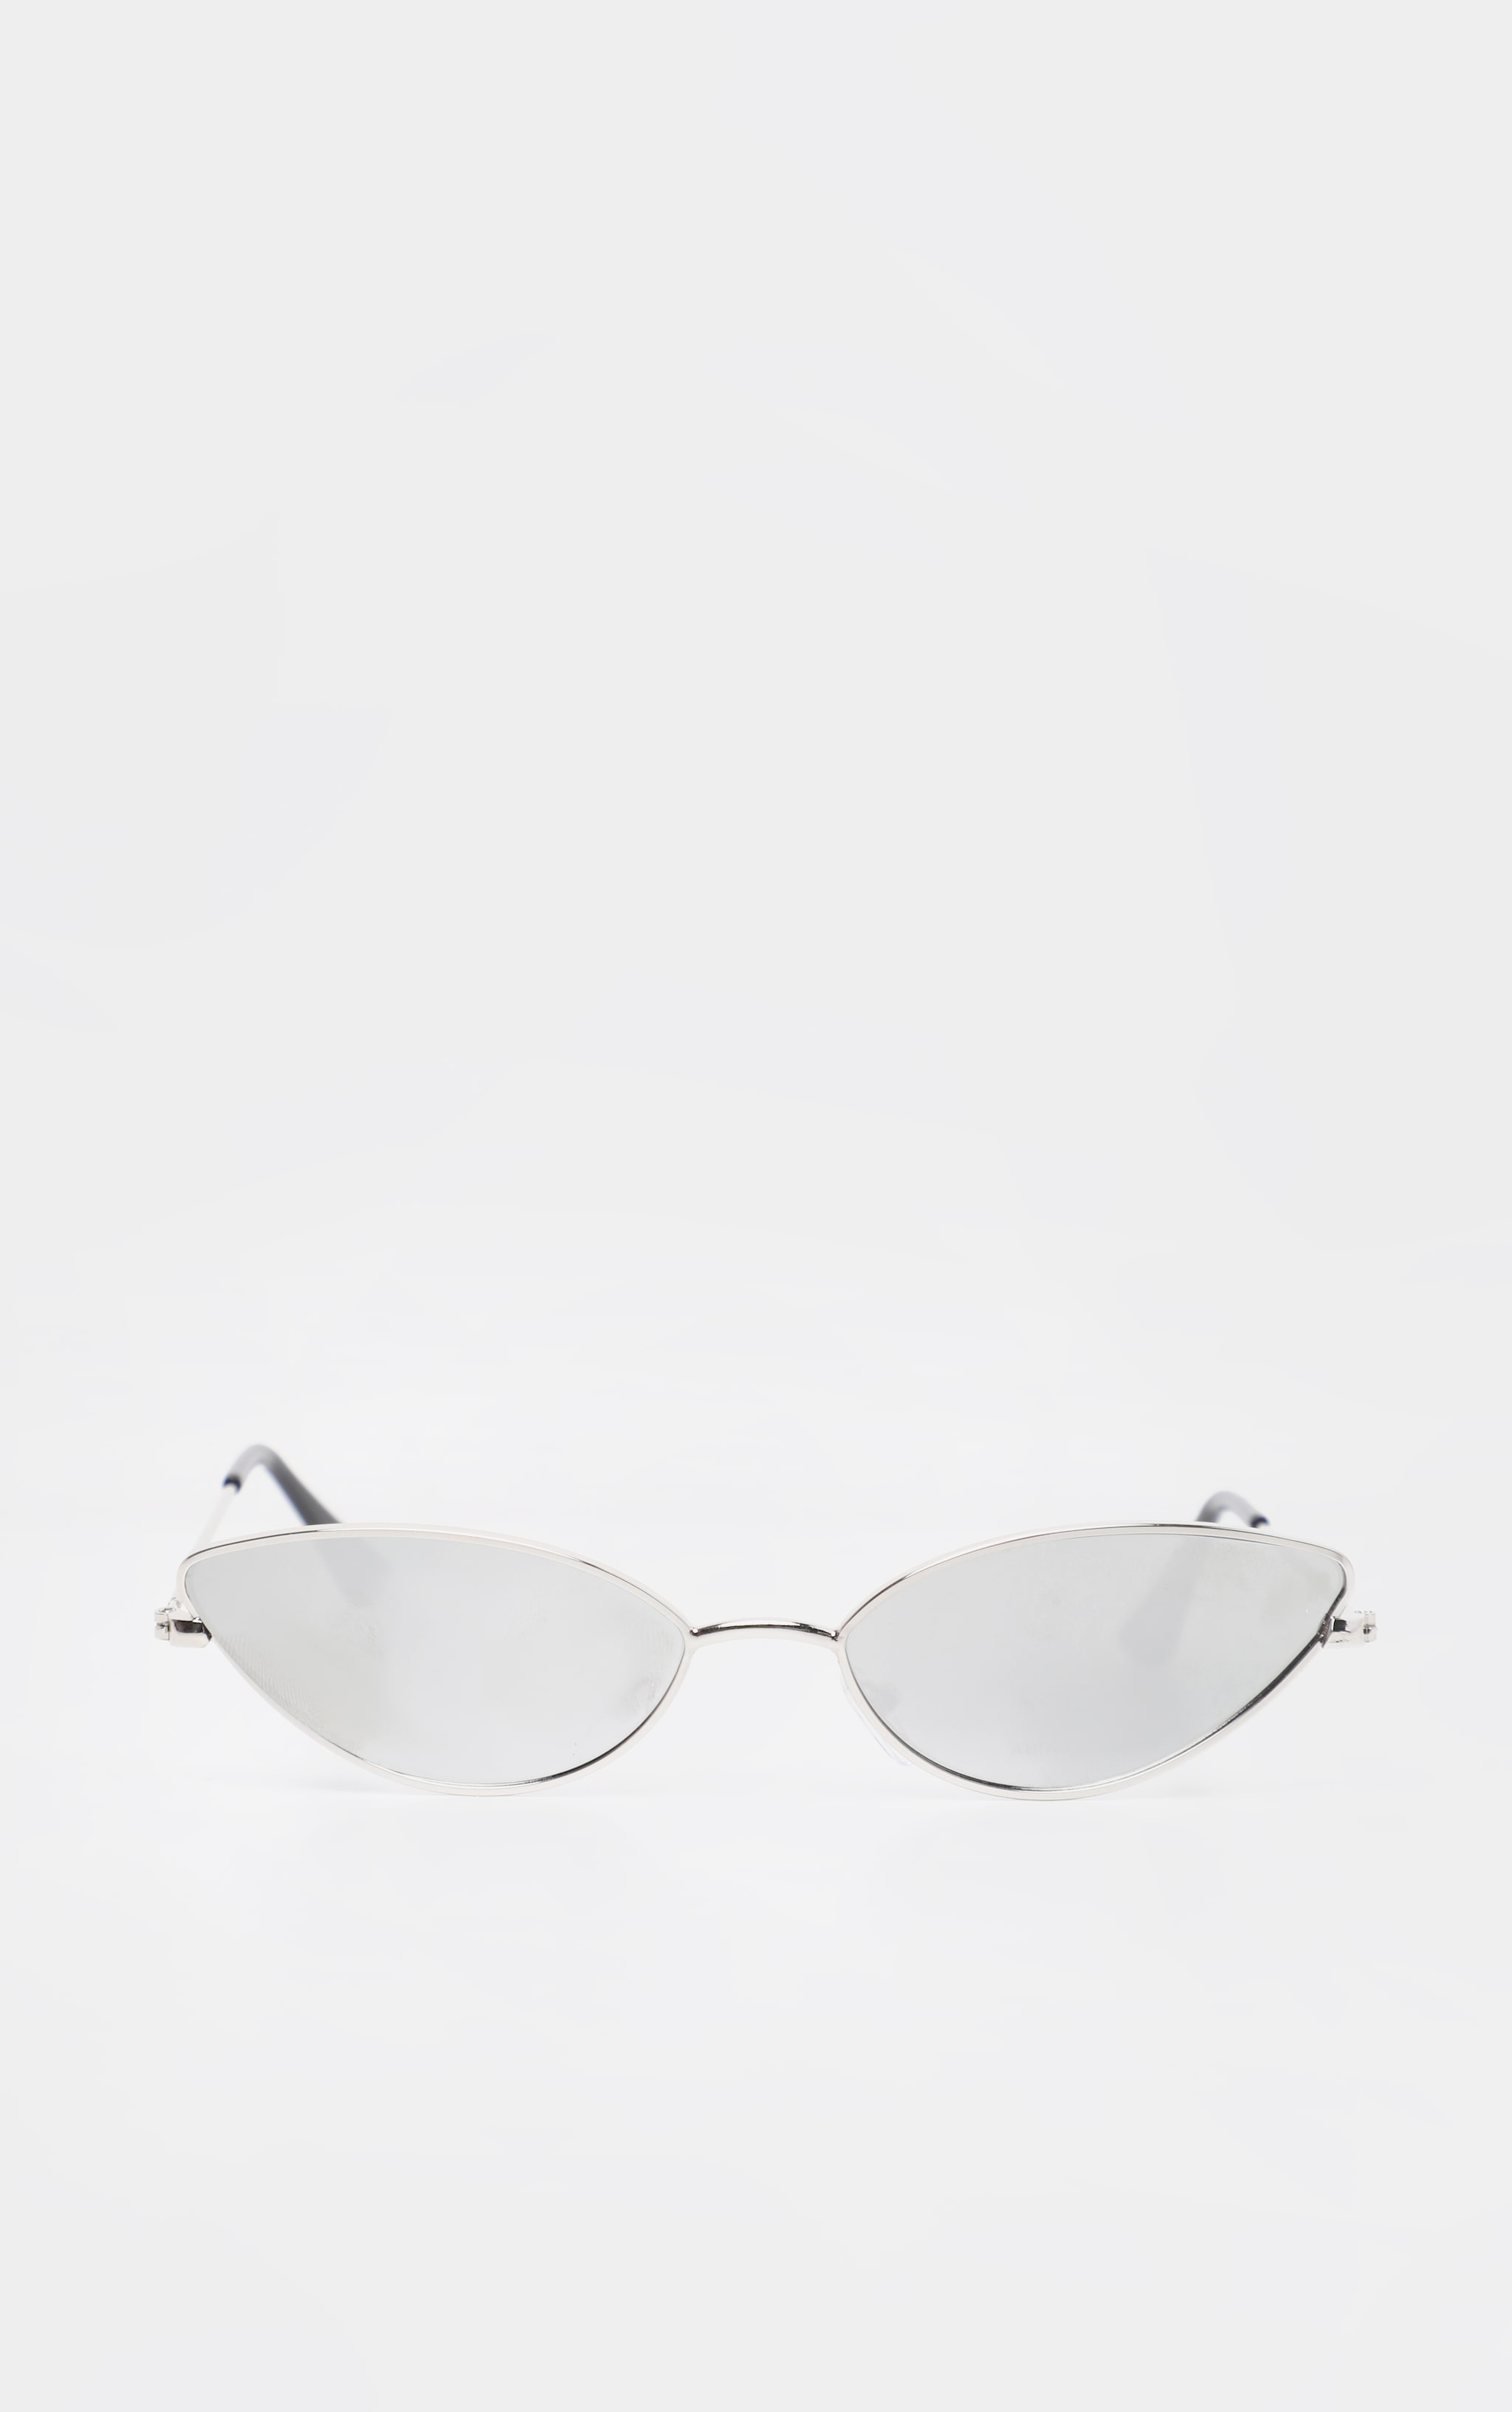 Silver Revo Metal Almond Shape Sunglasses 2